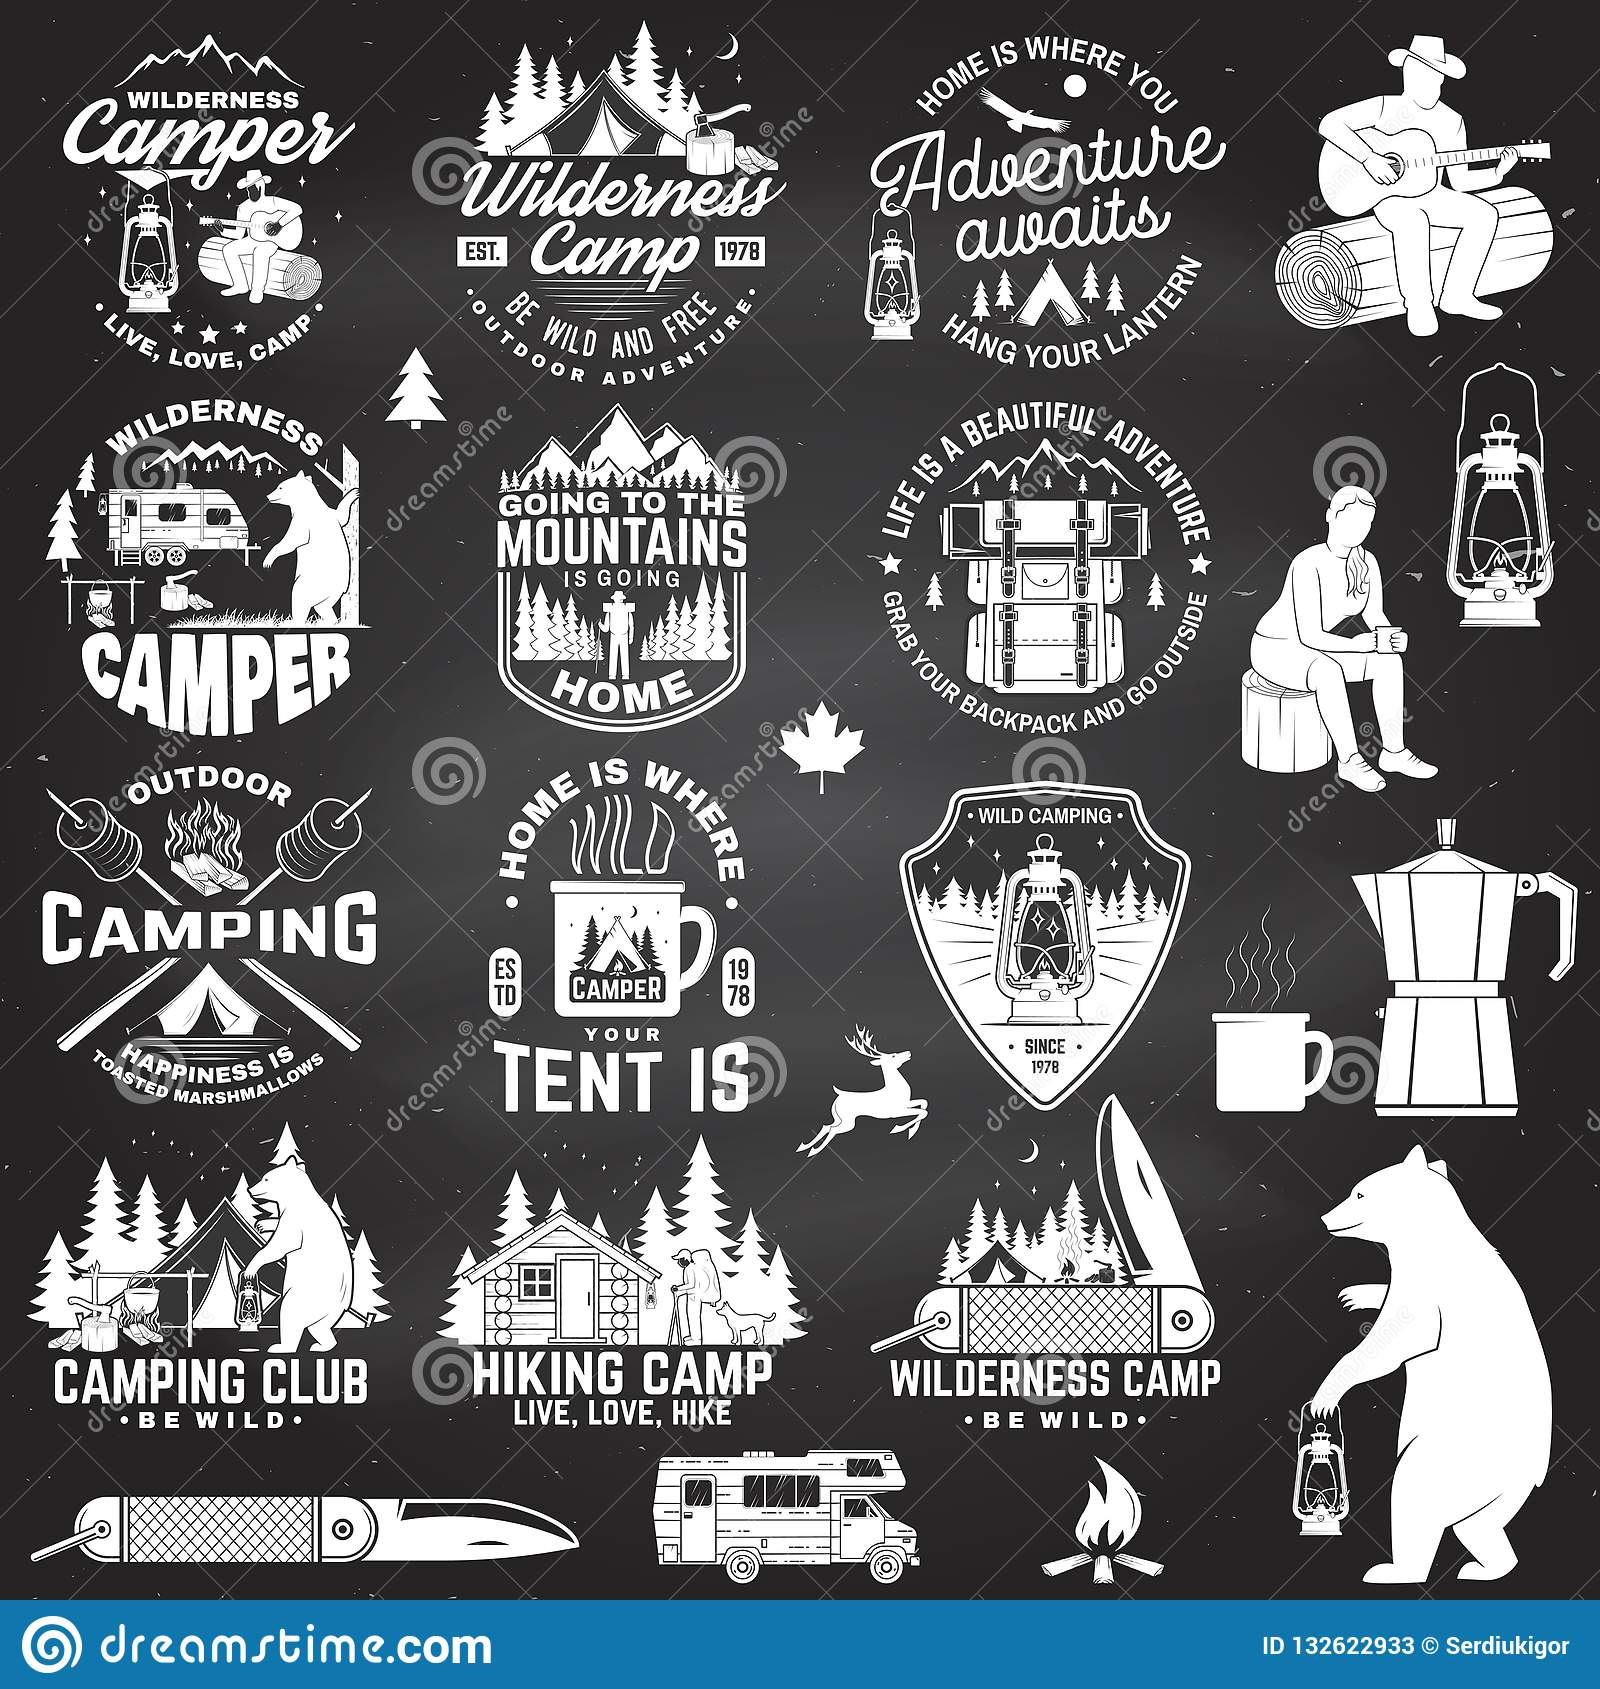 Wilderness camp. Be wild and free. Vector. Concept for badge, shirt or logo, print, stamp, patch. Vintage typography